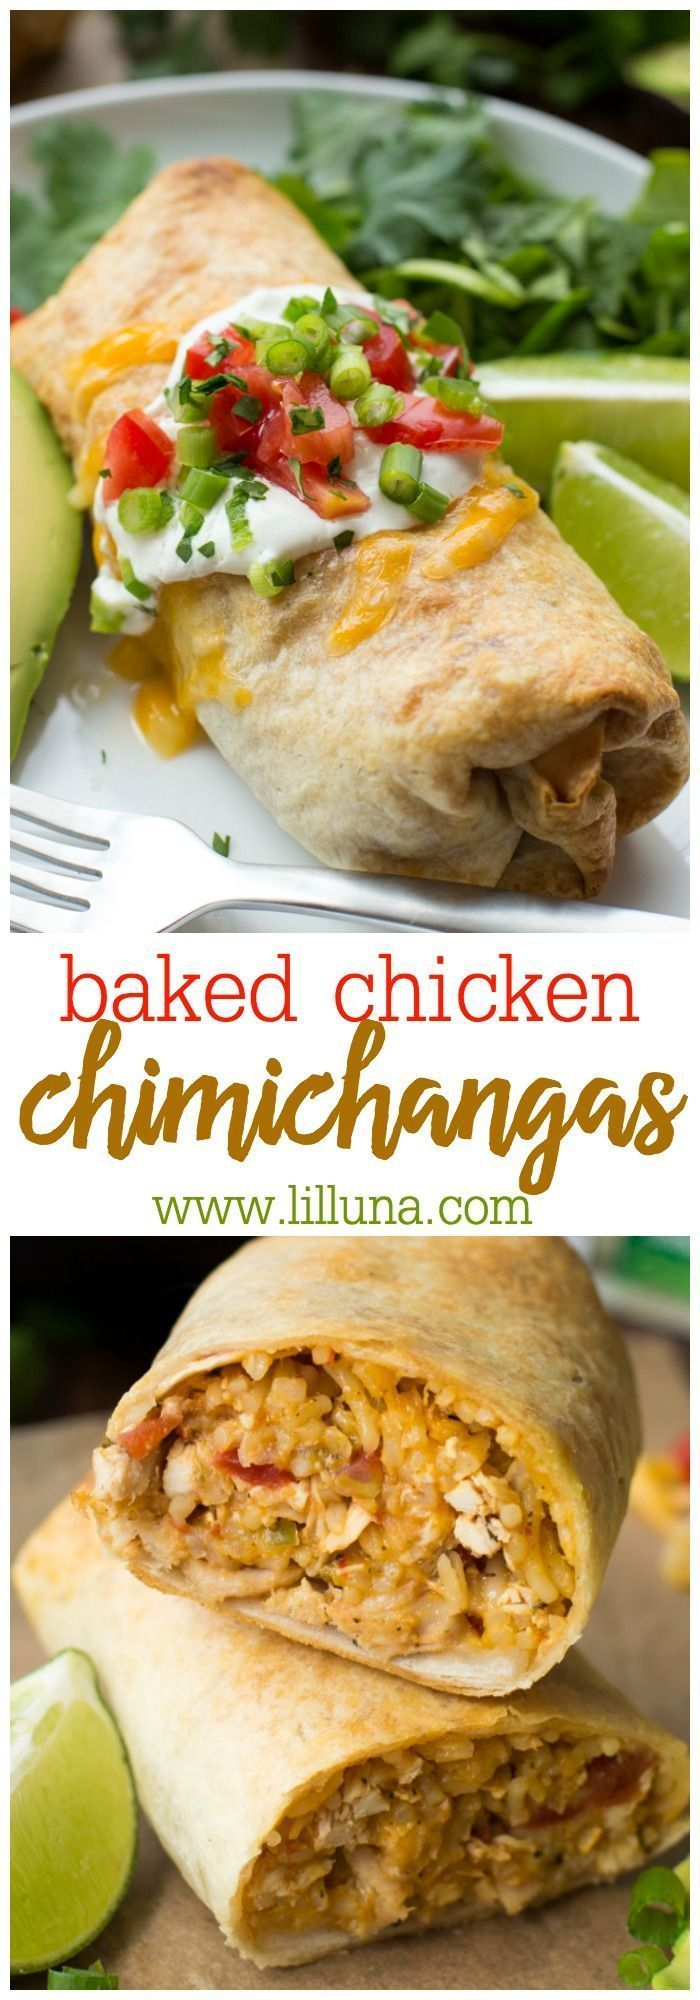 Baked Chicken Chimichangas - stuffed with rice, chicken…